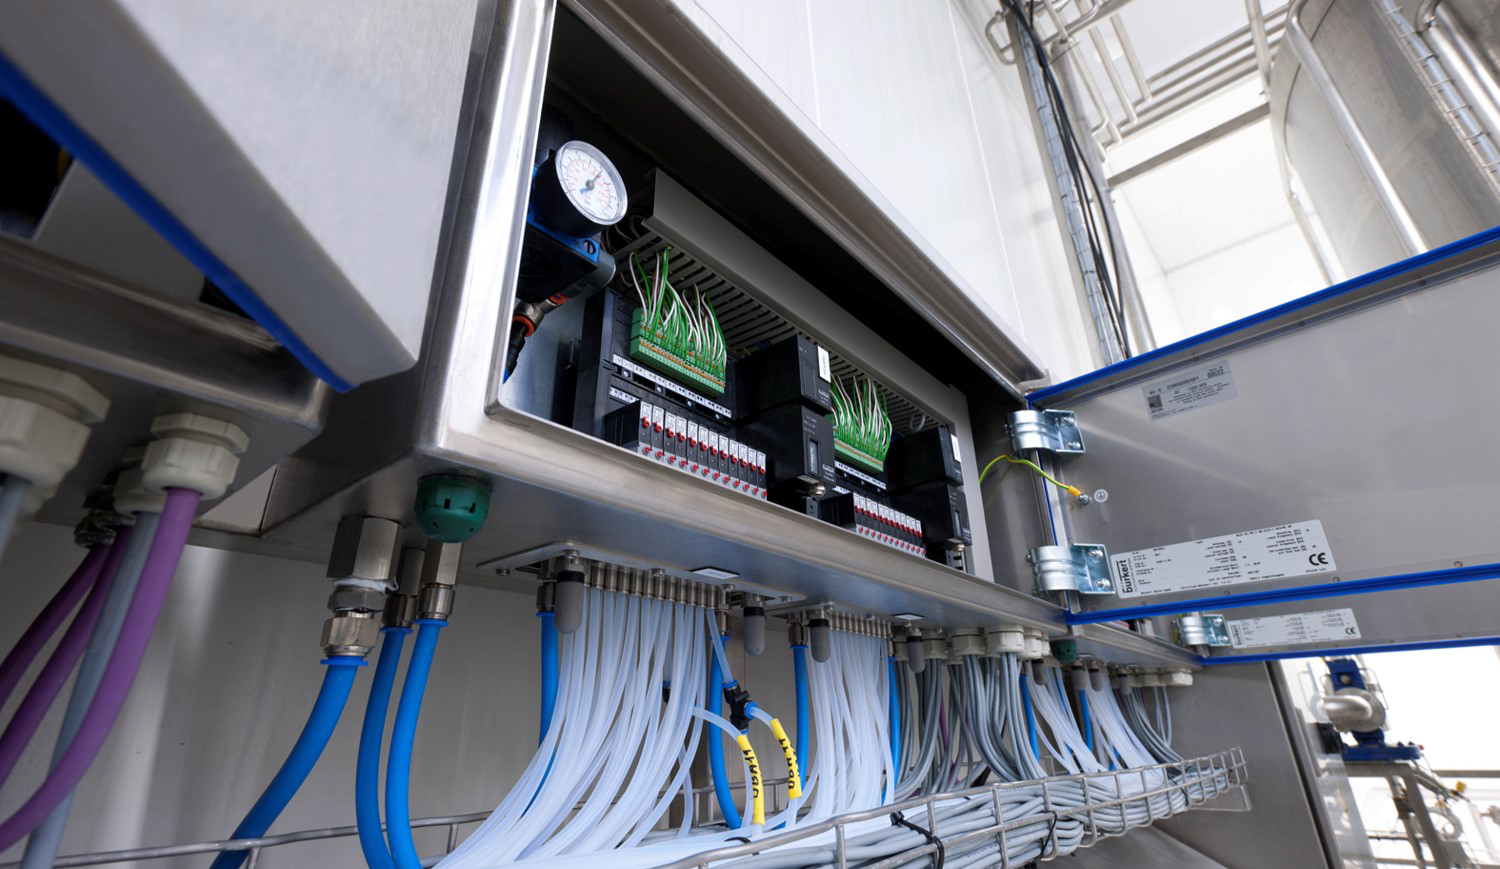 Finding the best partner for hygienic process control projects